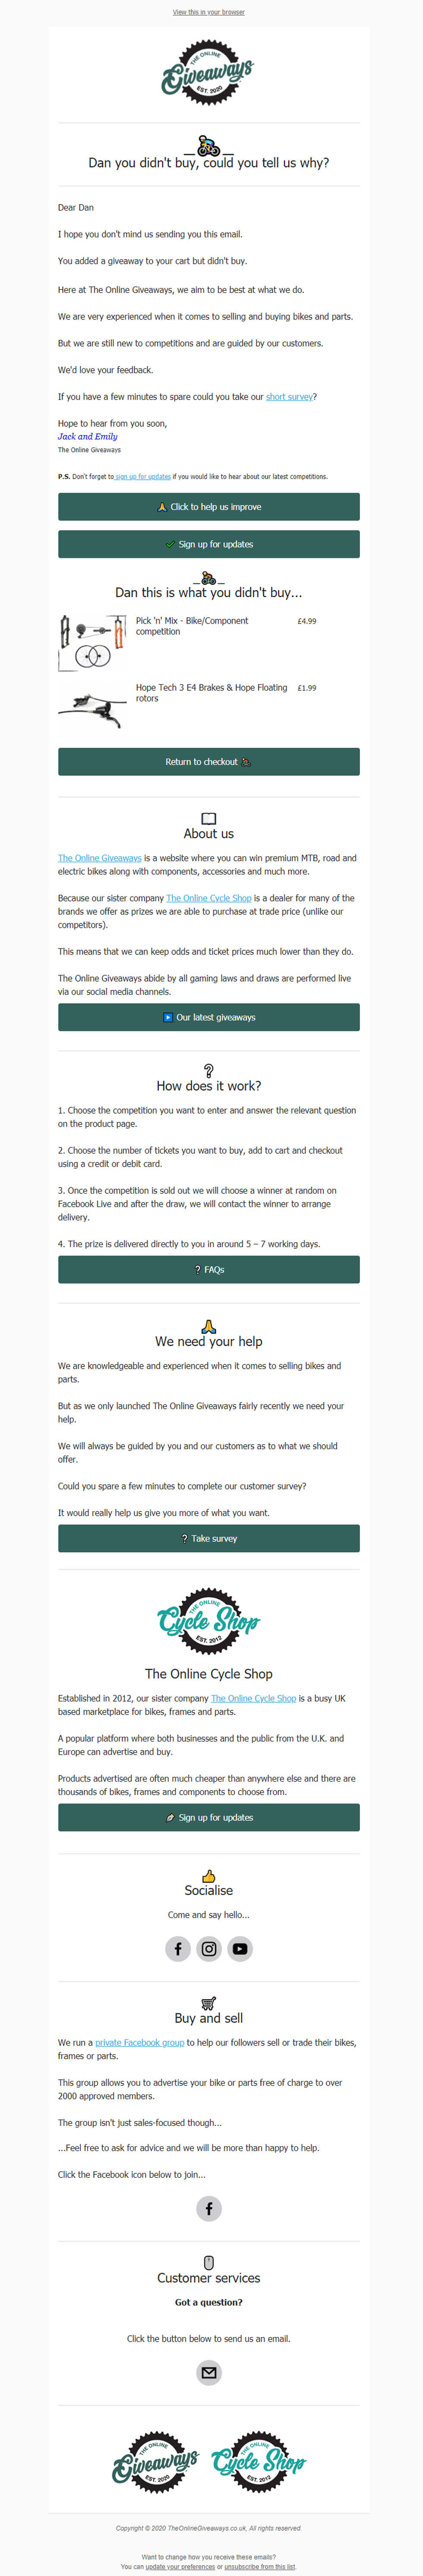 Personalised dropped checkout email with survey link